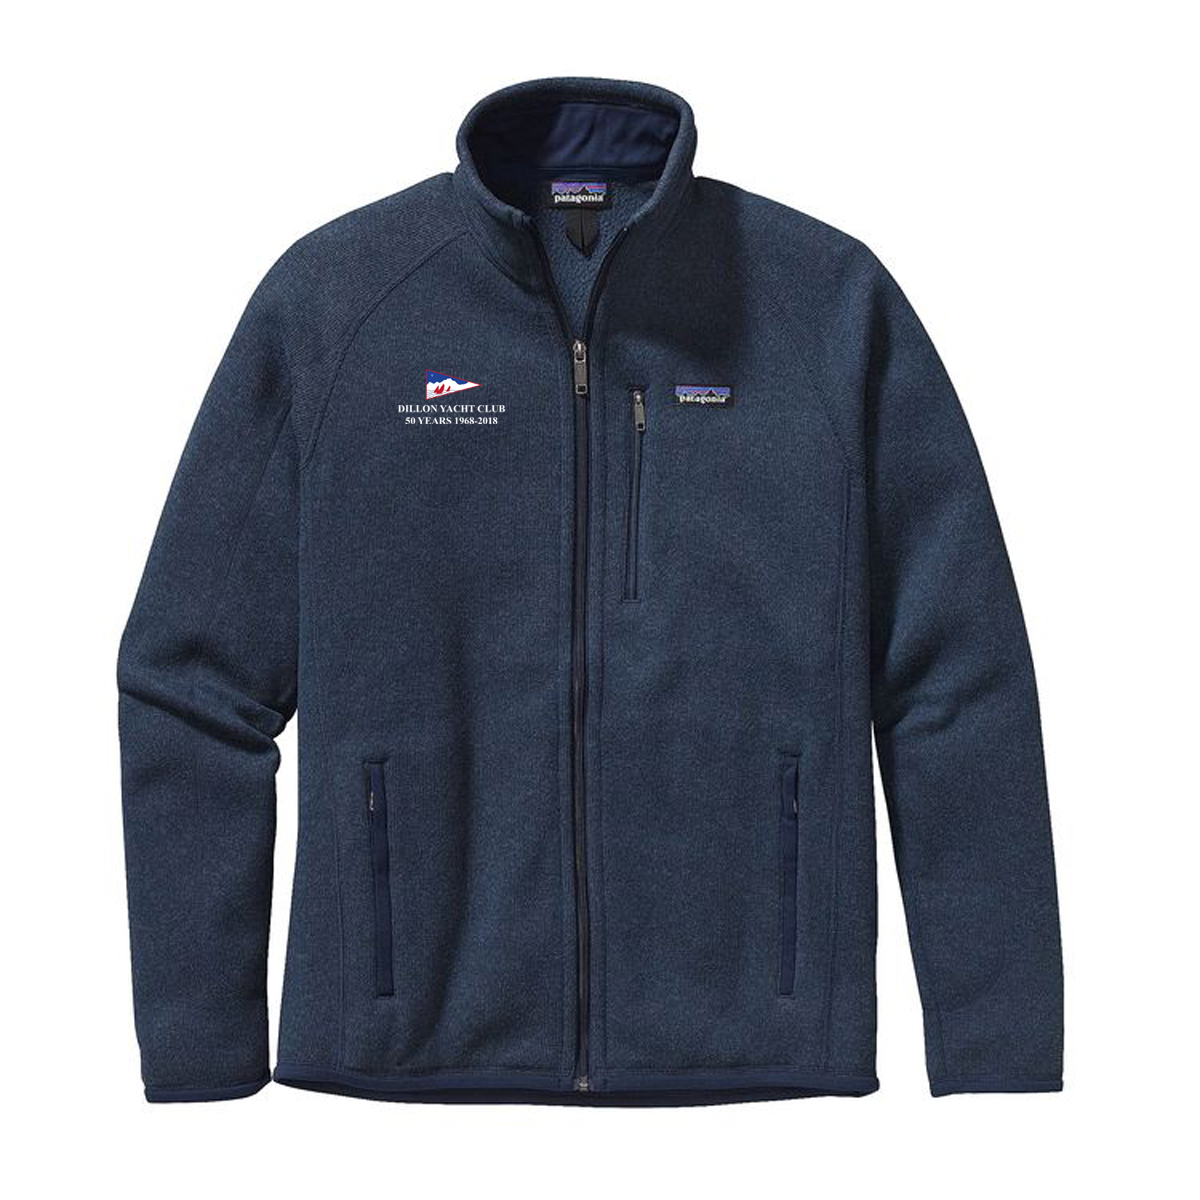 DILLON YACHT CLUB 50YR- Men's PATAGONIA BETTER SWEATER JACKET